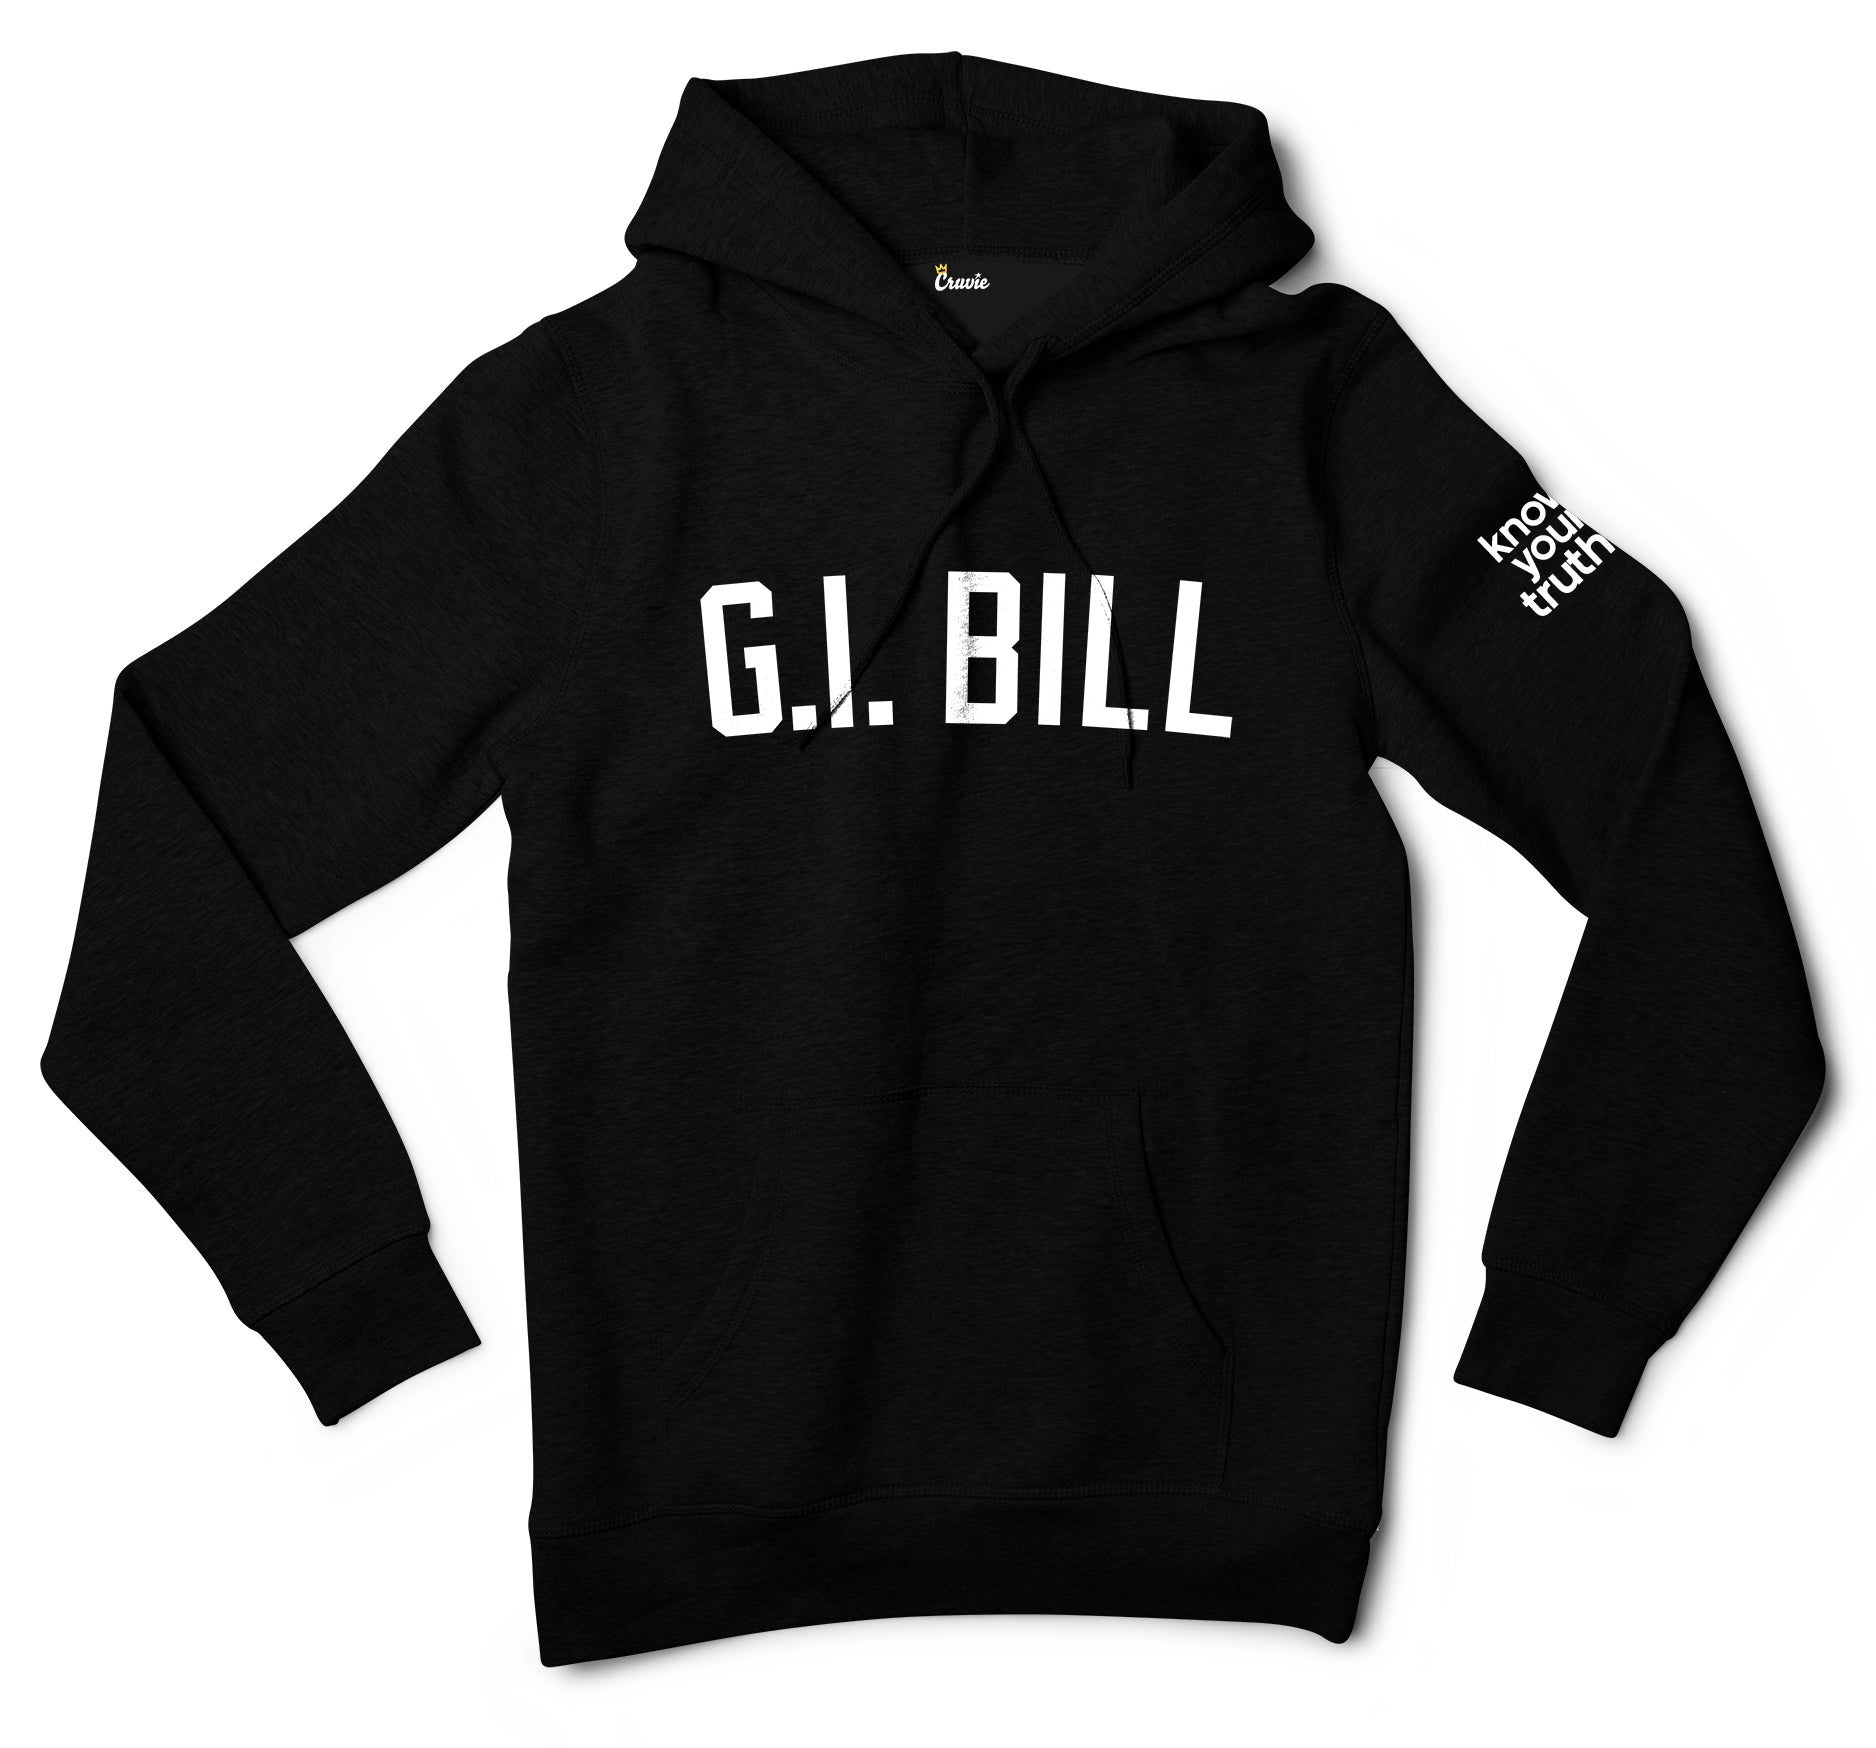 KYT? | G.I. BILL Shirt - Black